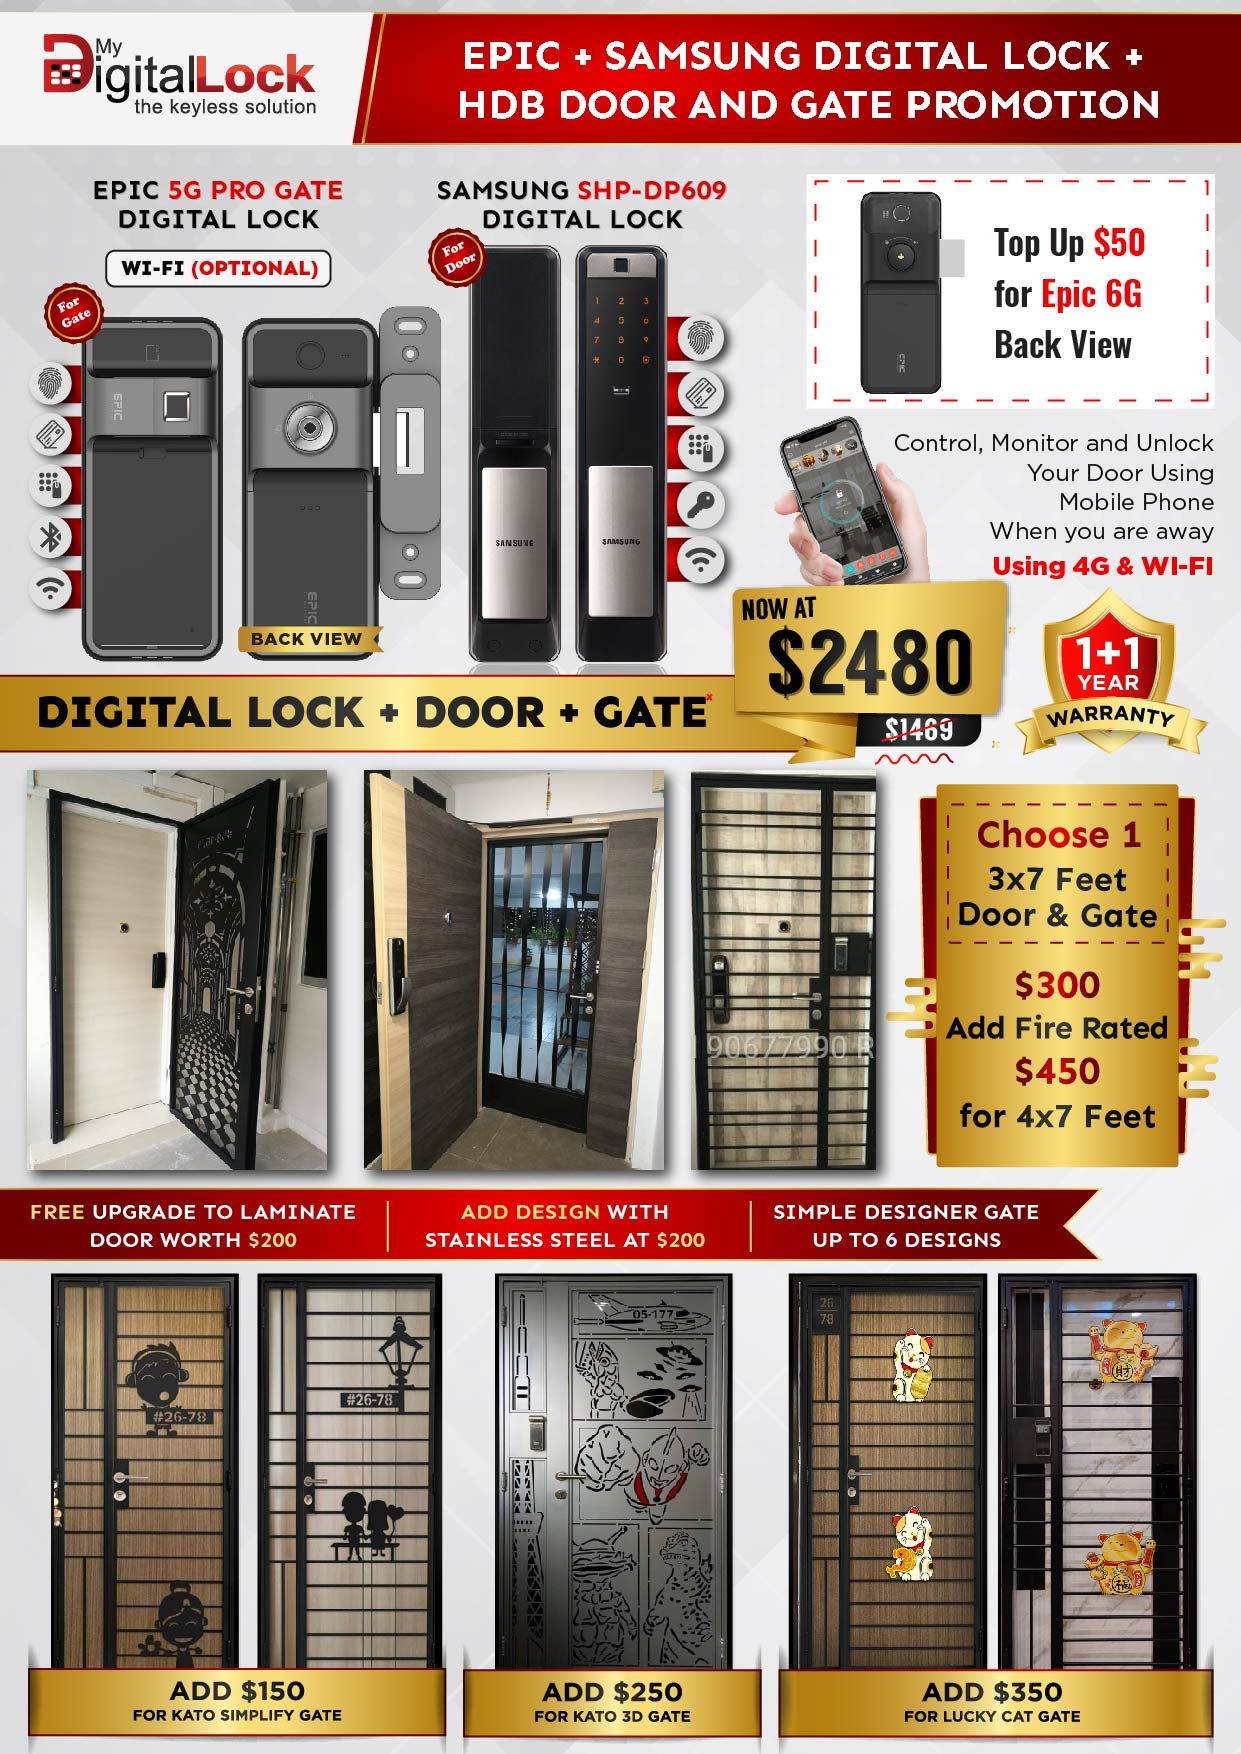 Golden-Rat-Year-HDB-Door-and-Gate-Promotion-with-EPIC-5G-PRO-and-Samsung-SHP-DP609